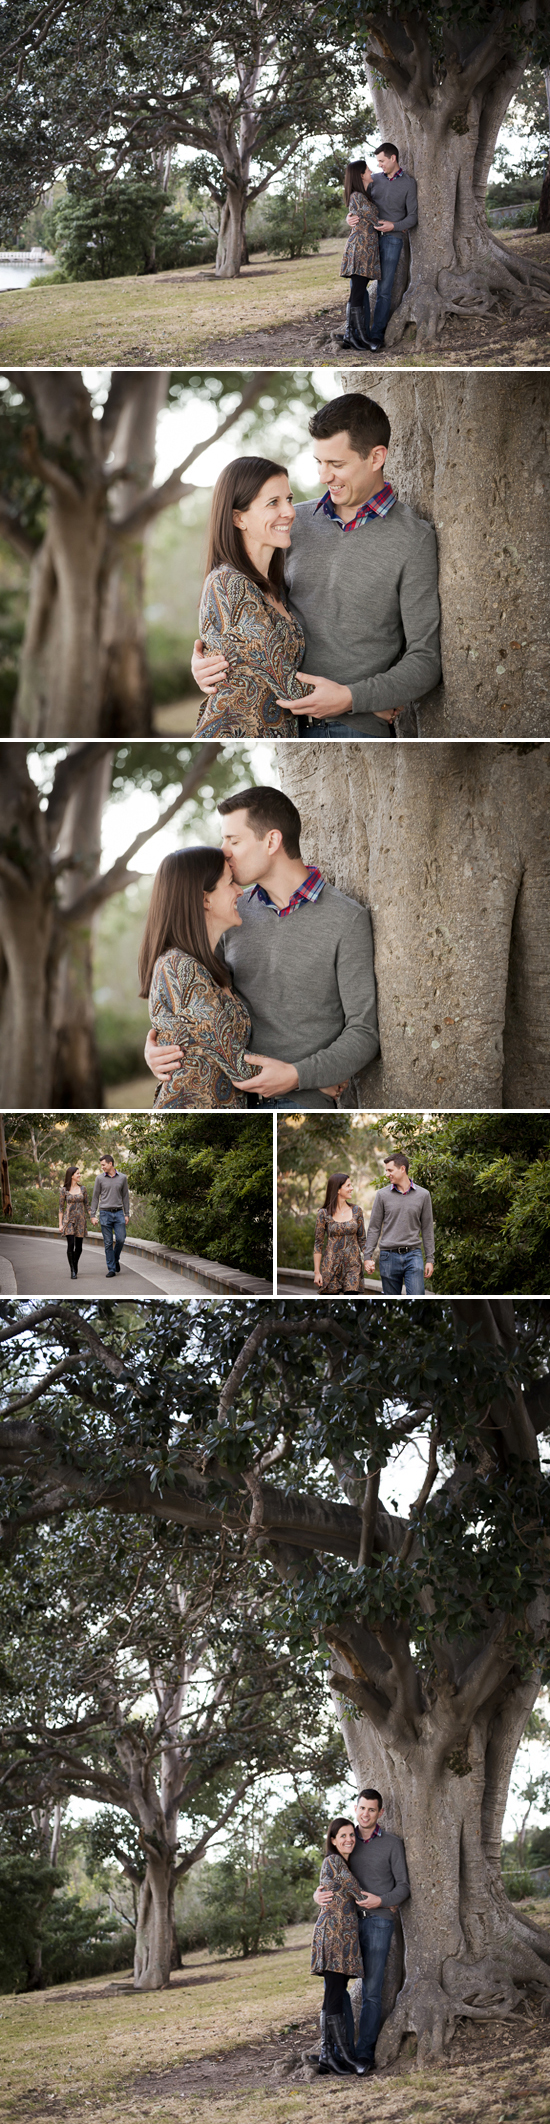 Carolyn & Andrew's Engagement Session at Como, Sutherland Shire